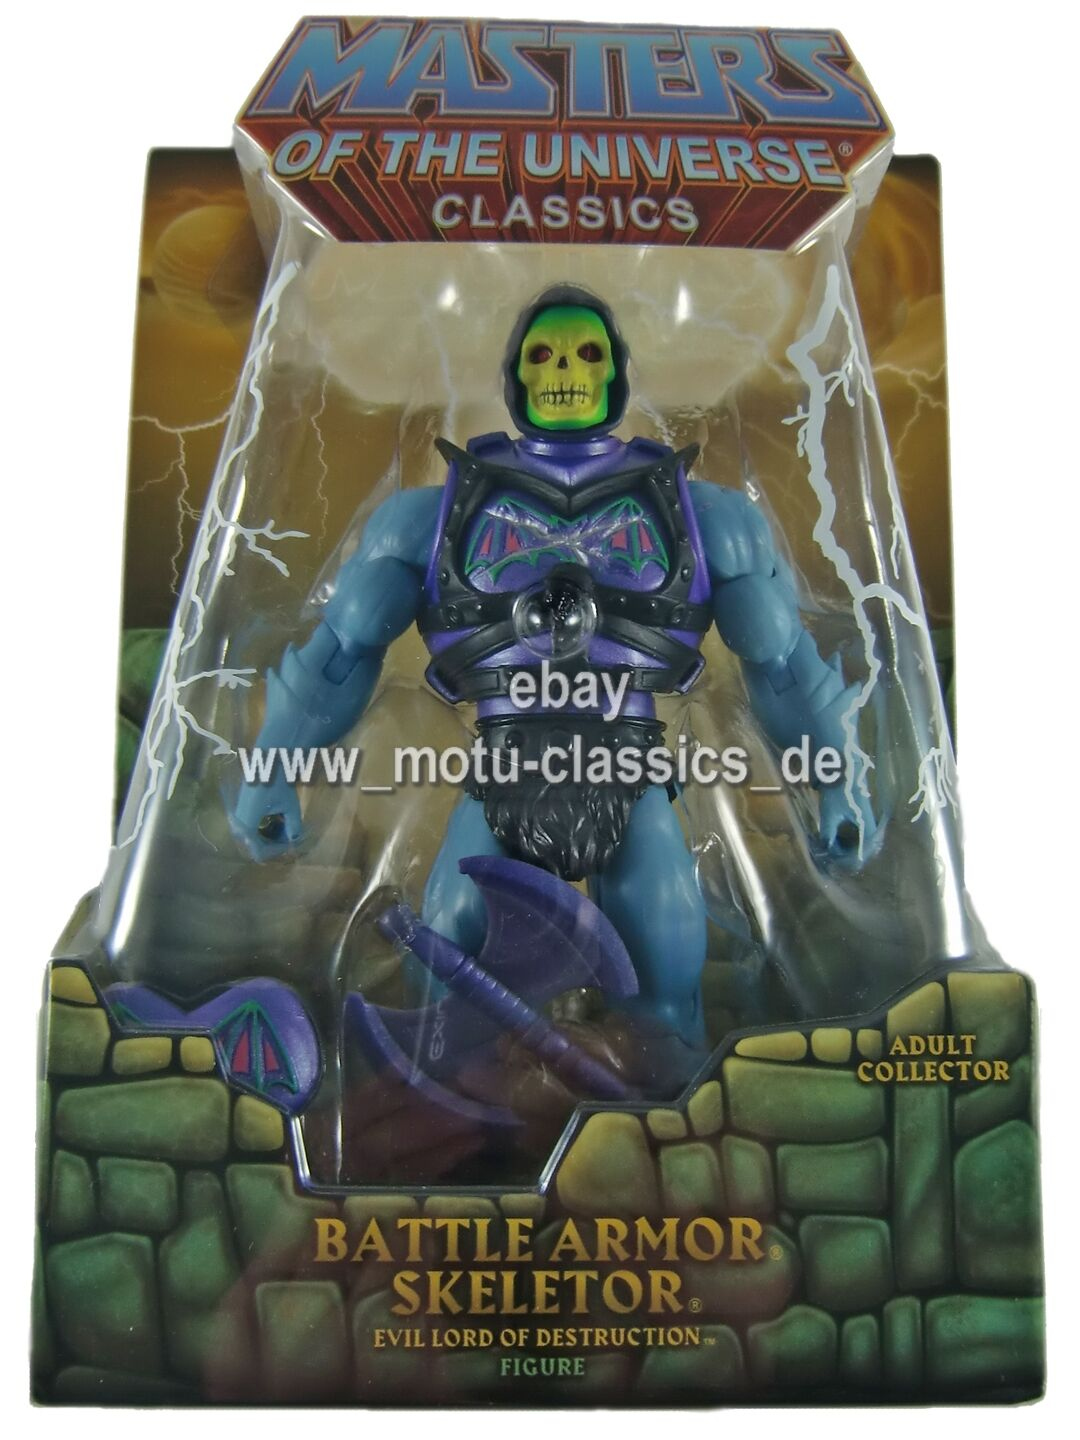 Battle armor skeletor first release motu masters of the universe classics I